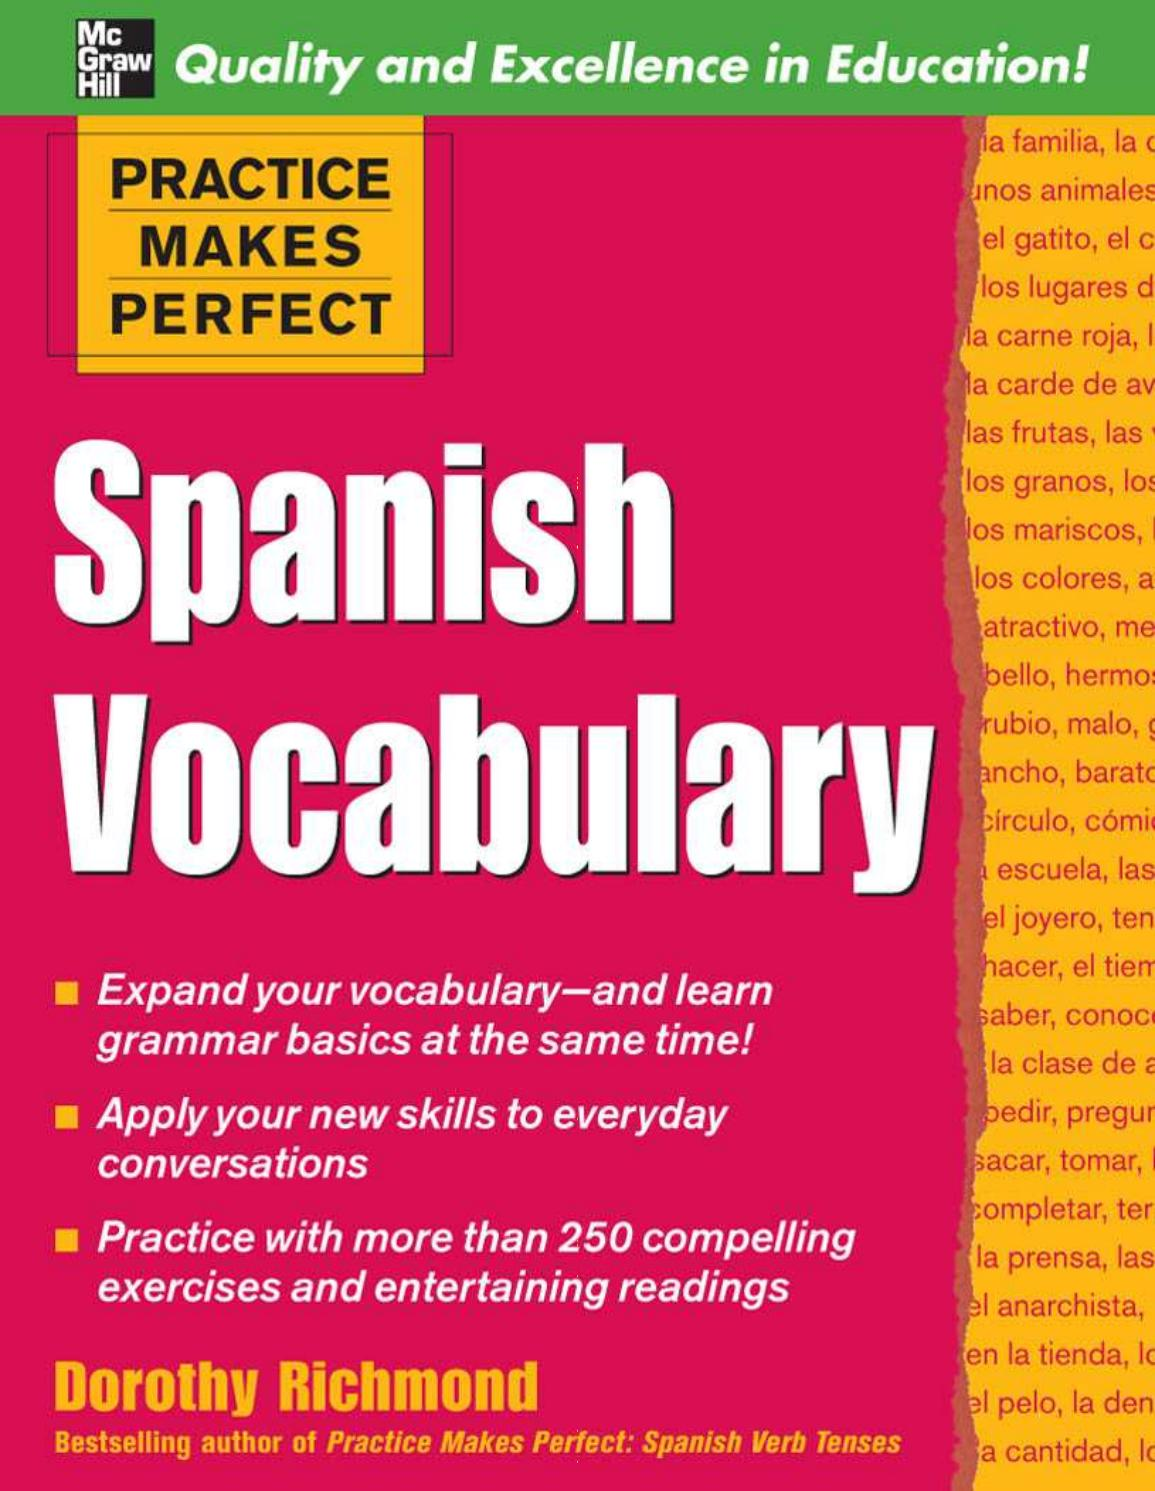 Practice makes perfect spanish vocabulary by Lei Xue - issuu